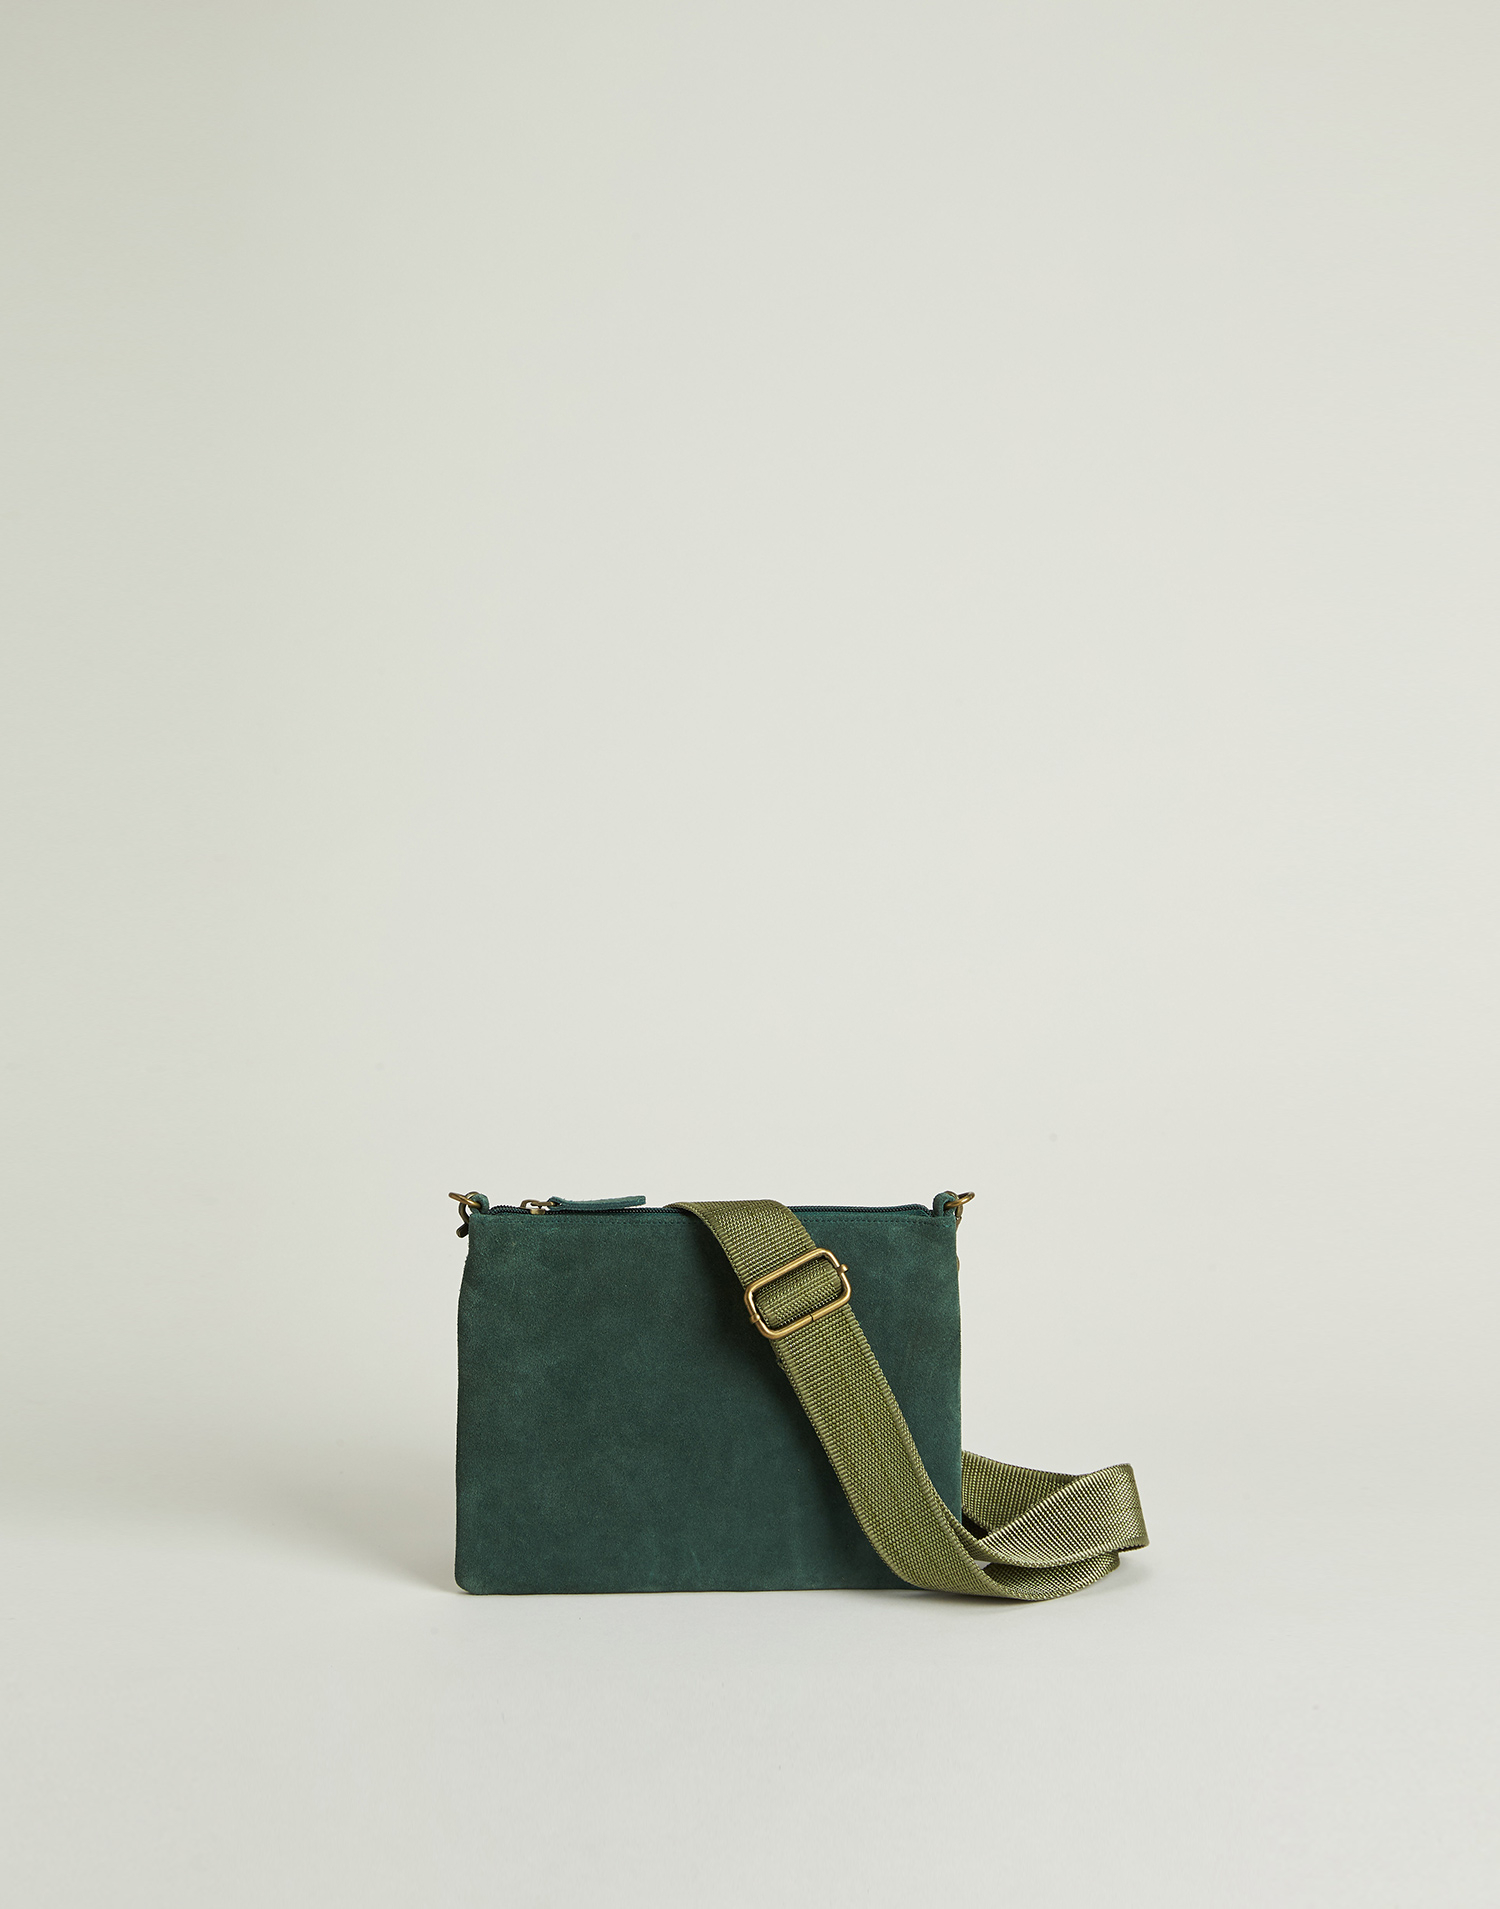 Basic suede bag convertible in a belt bag